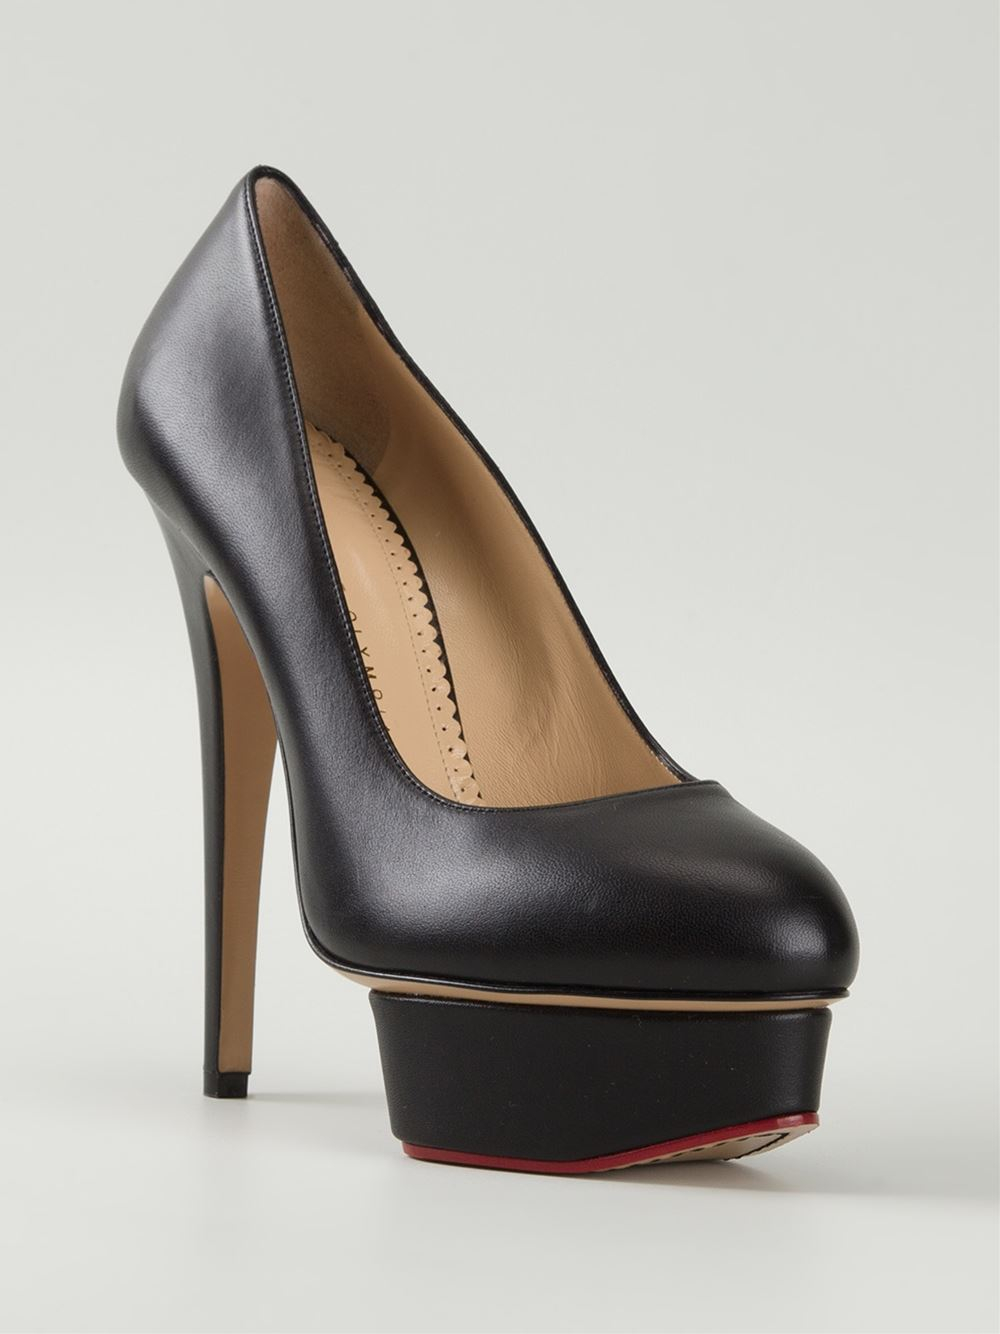 Charlotte Olympia Shoes Cheap